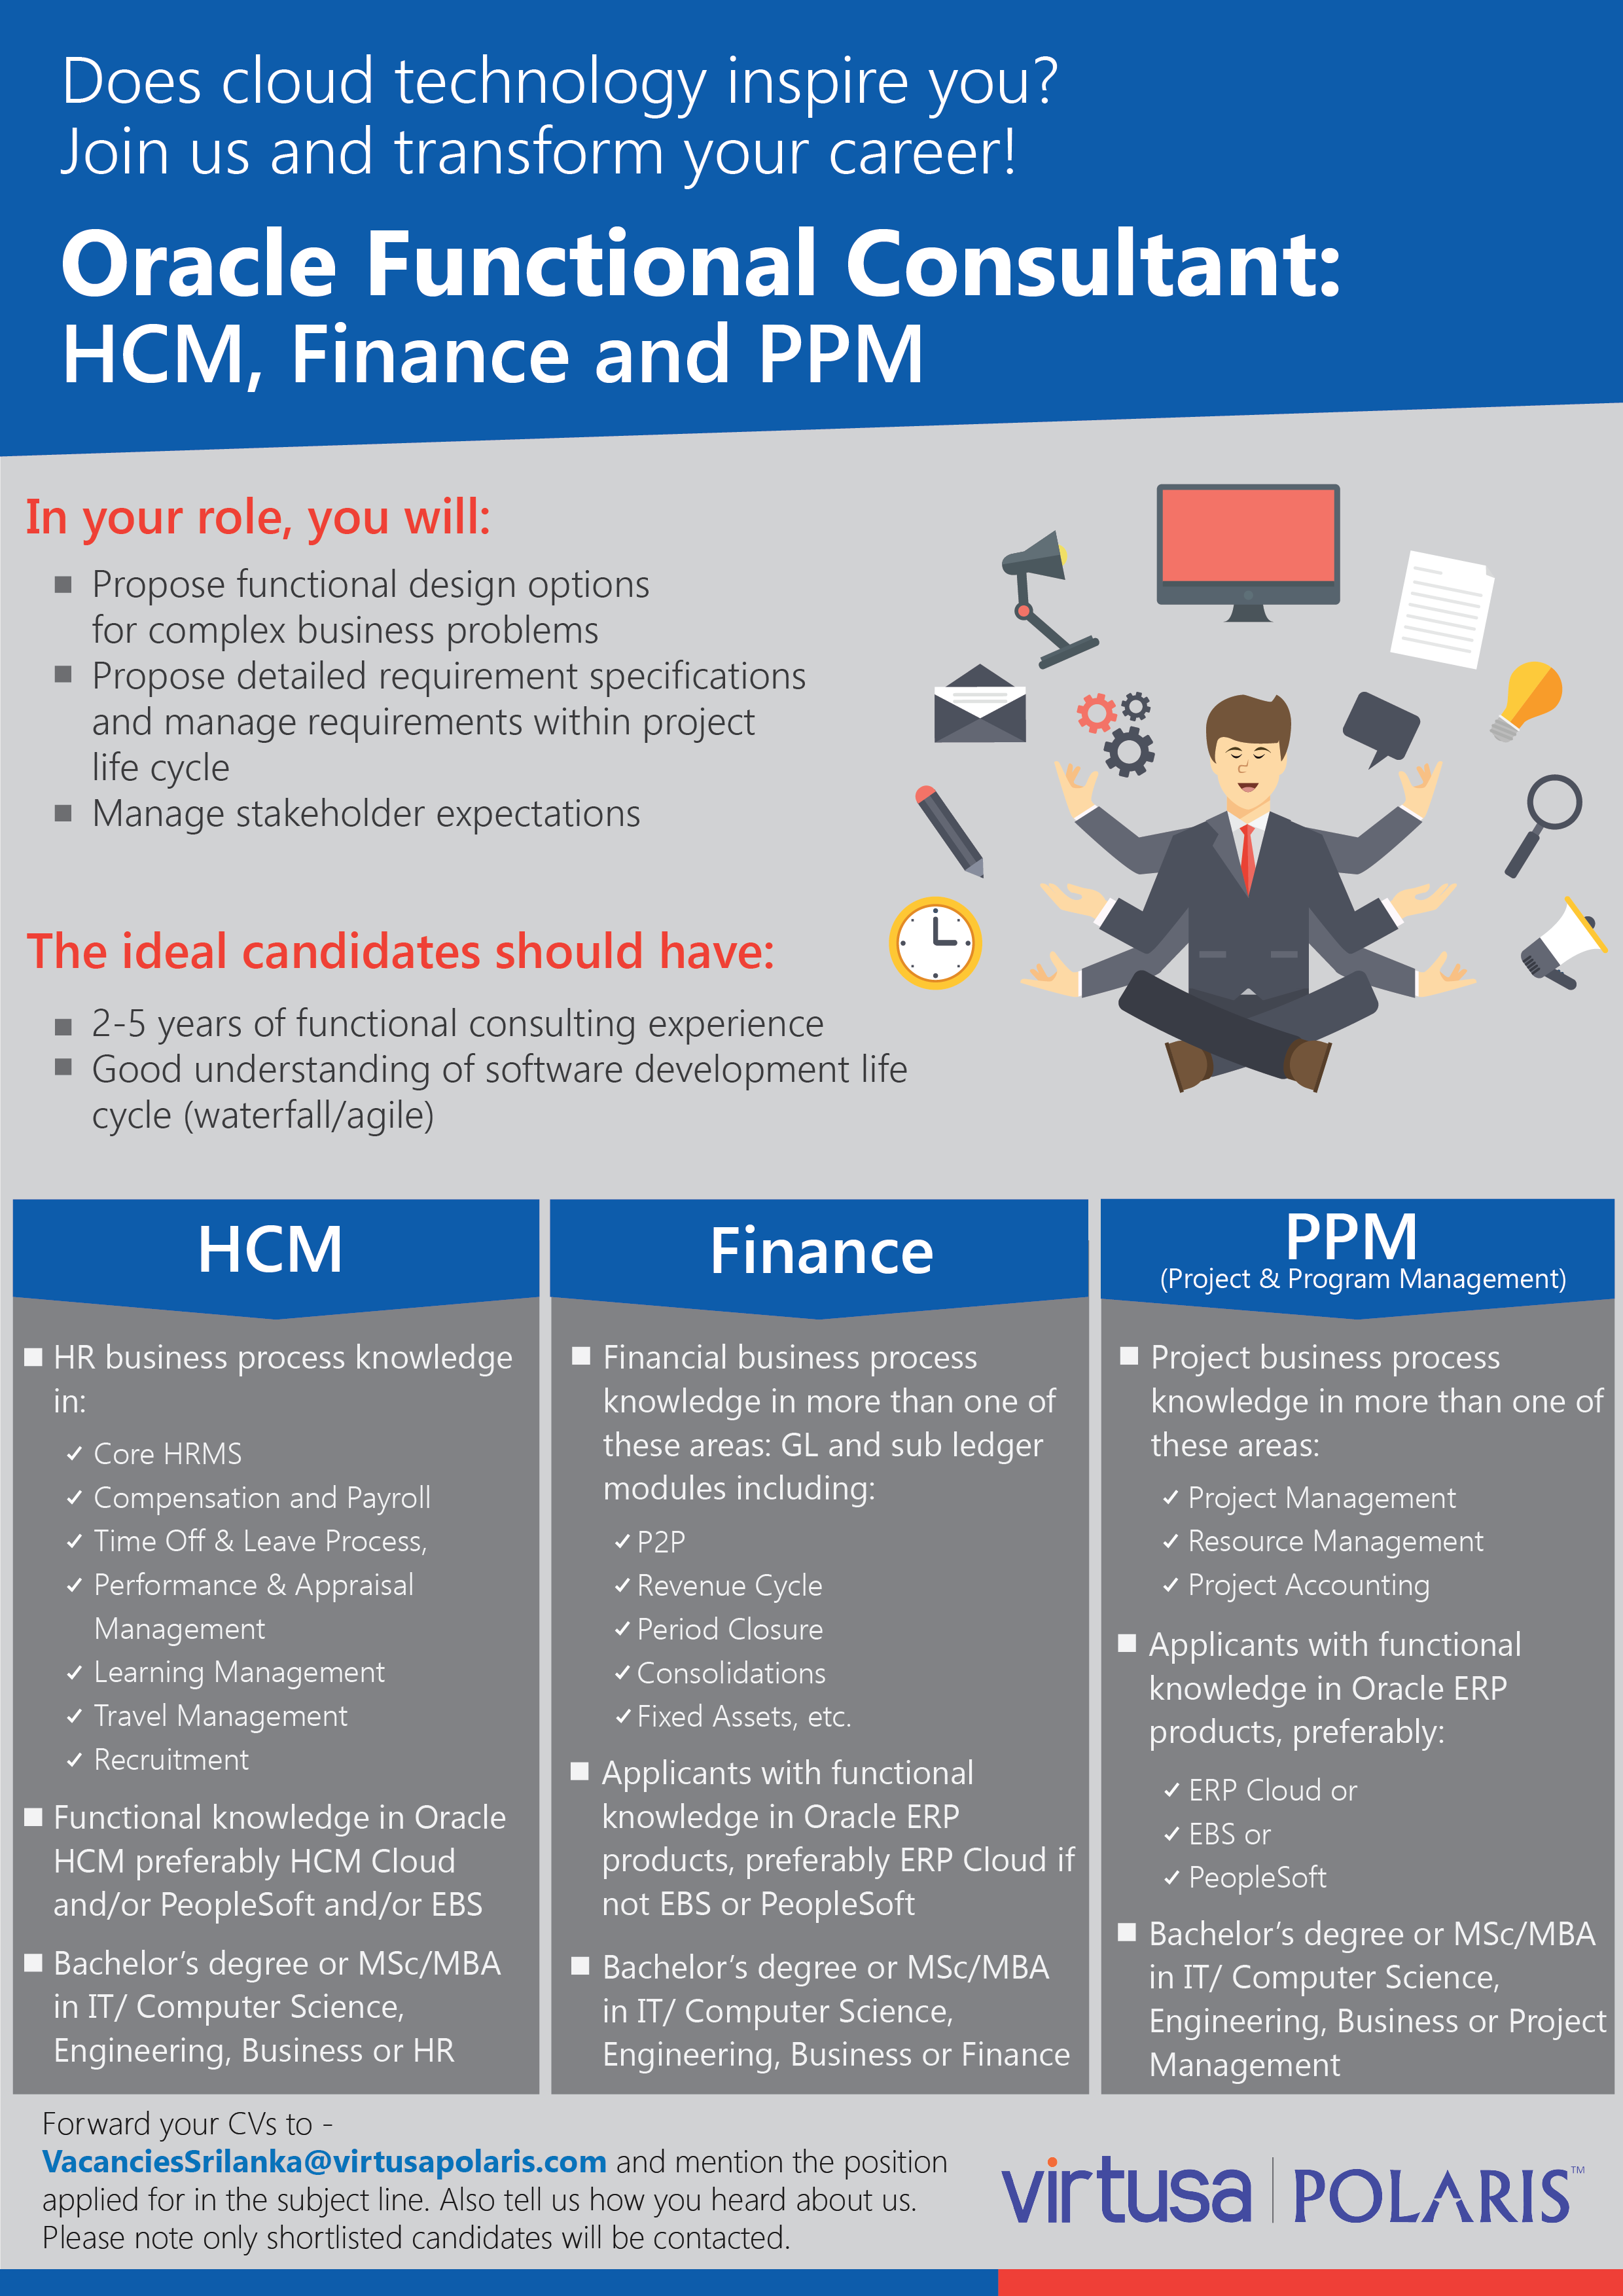 Oracle Functional Consultant Hcm Finance Ppm At Virtusa Pvt Ltd Career First Finance Software Development Life Cycle Consulting